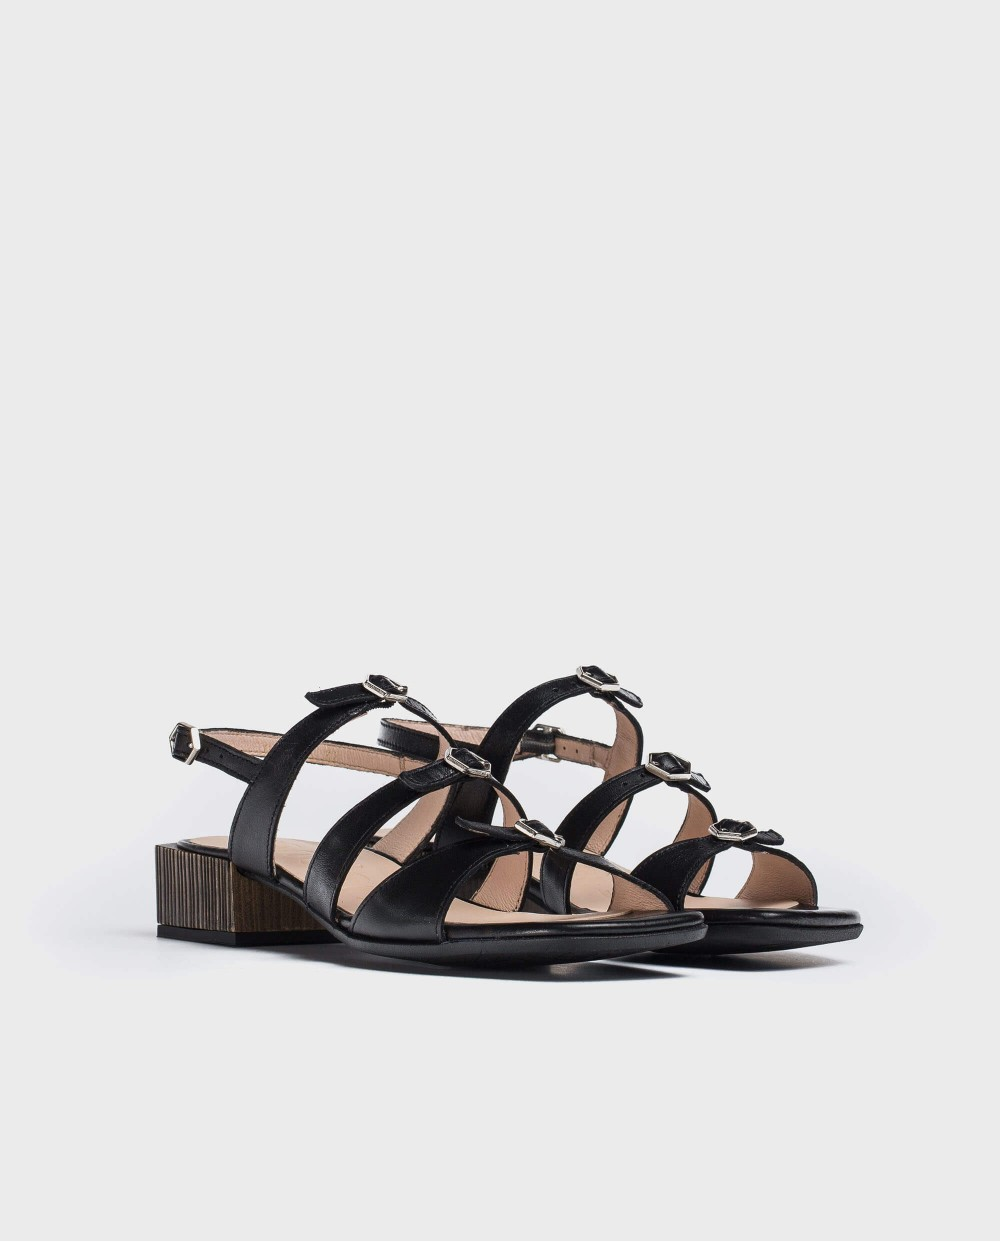 Wonders-Sandals-High heeled sandal with buckles